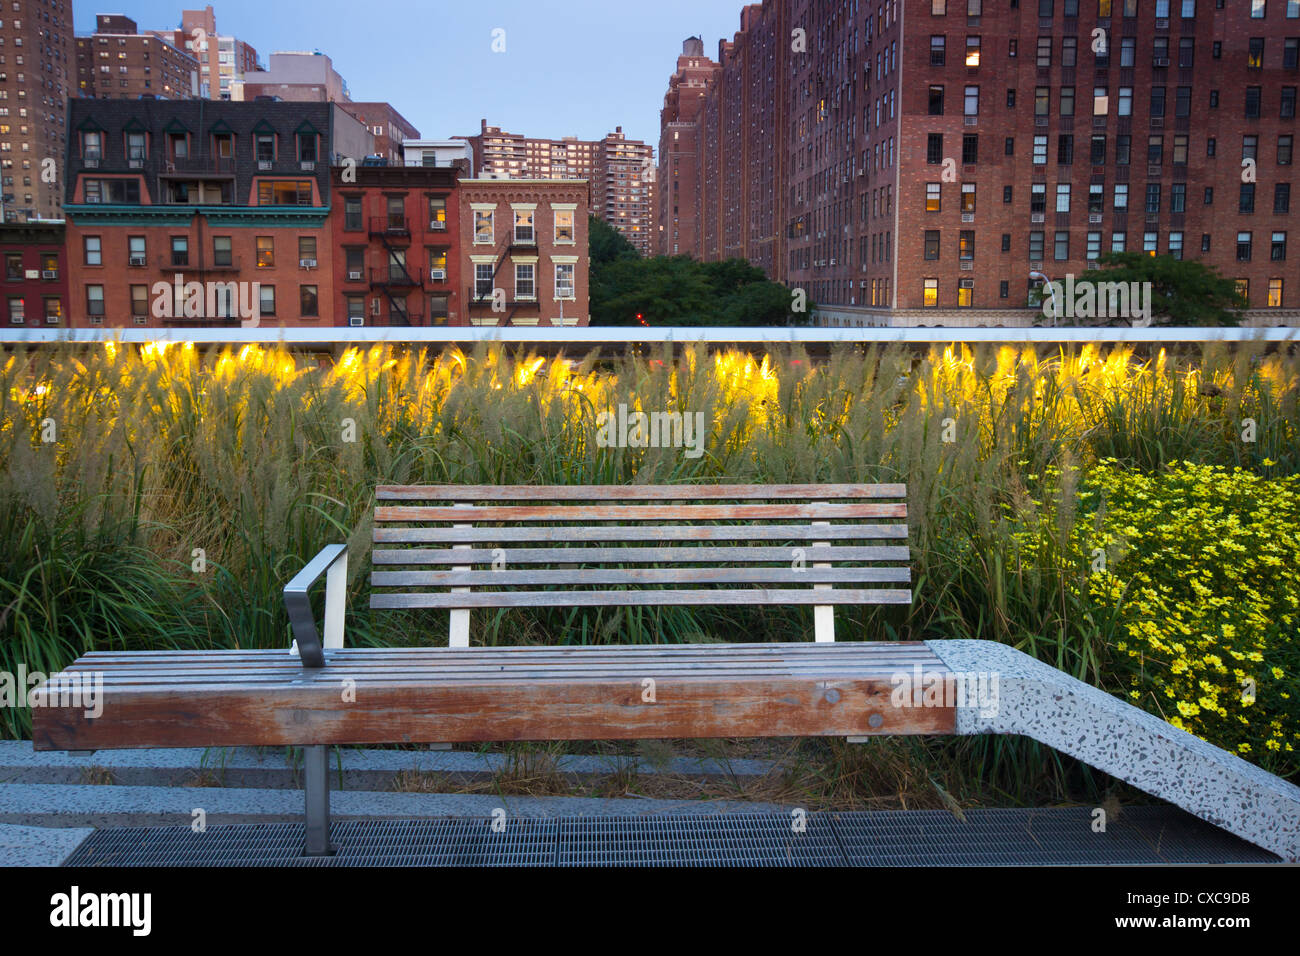 Bench At High Line Park In New York City With Buildings In